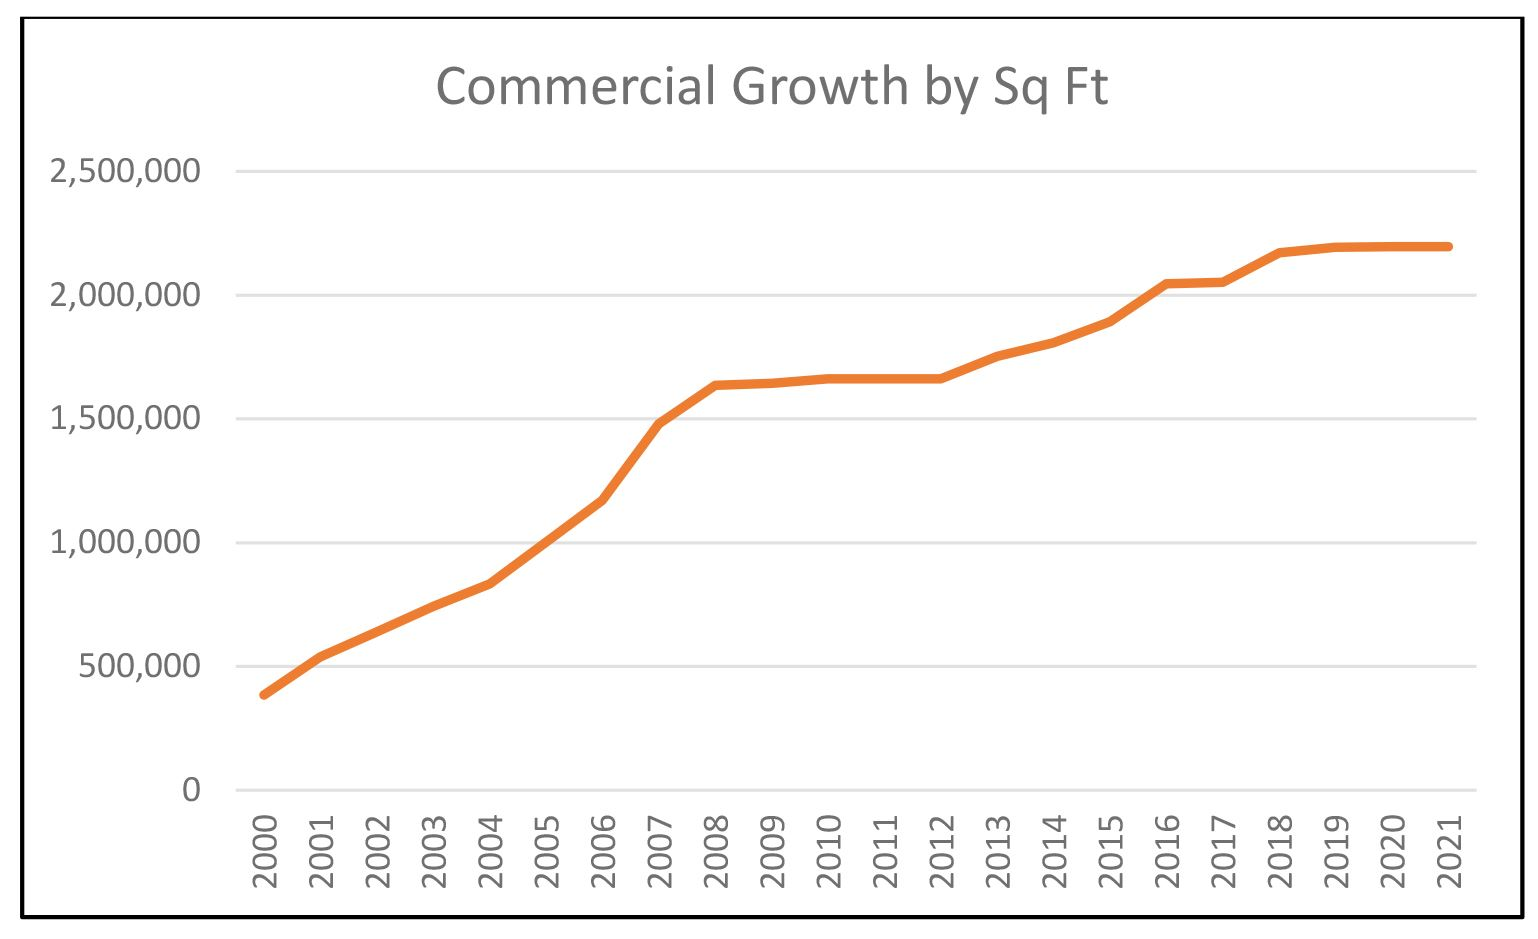 Commercial Growth 2000-2021